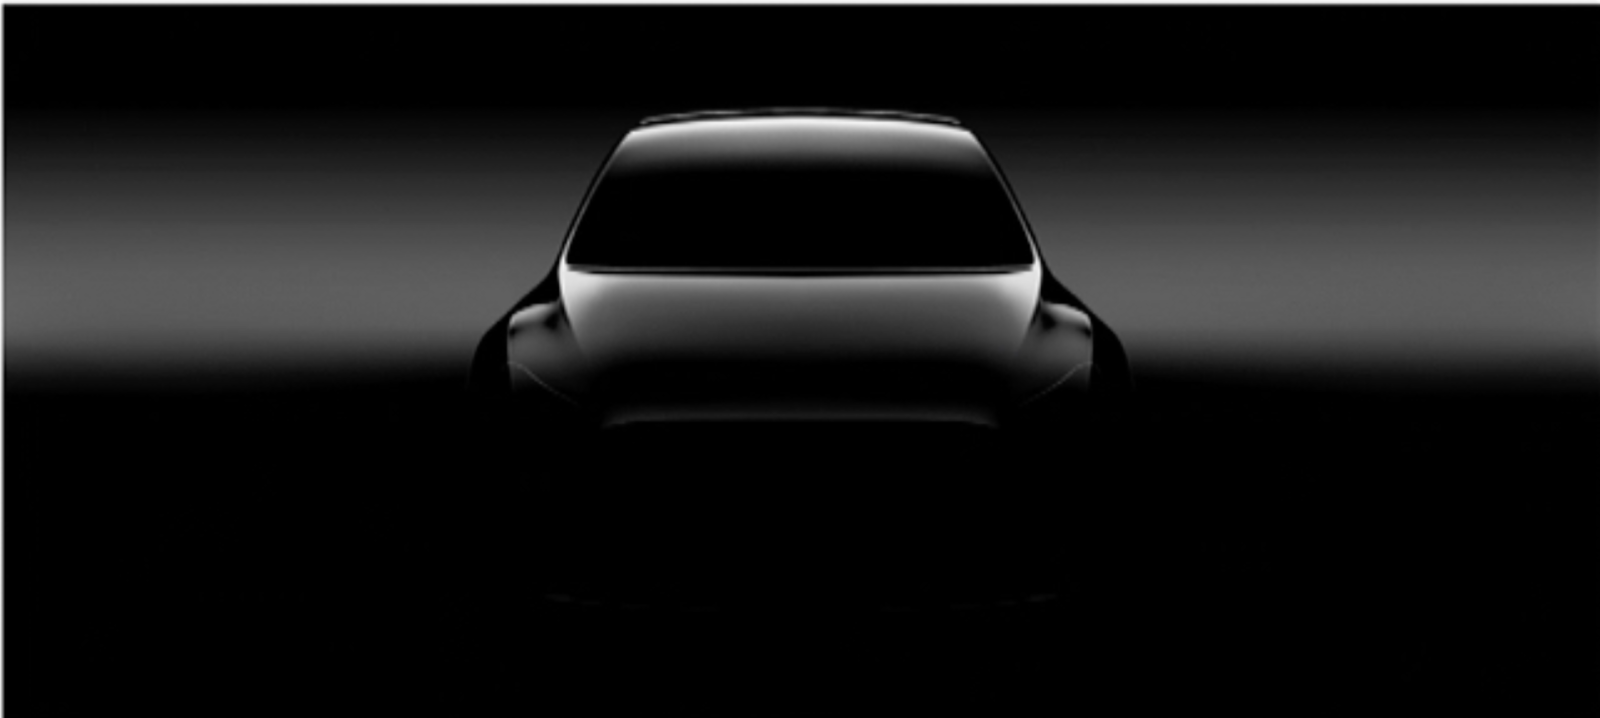 Tesla Model Y is coming to market sooner using Model 3 architecture, says Elon Musk